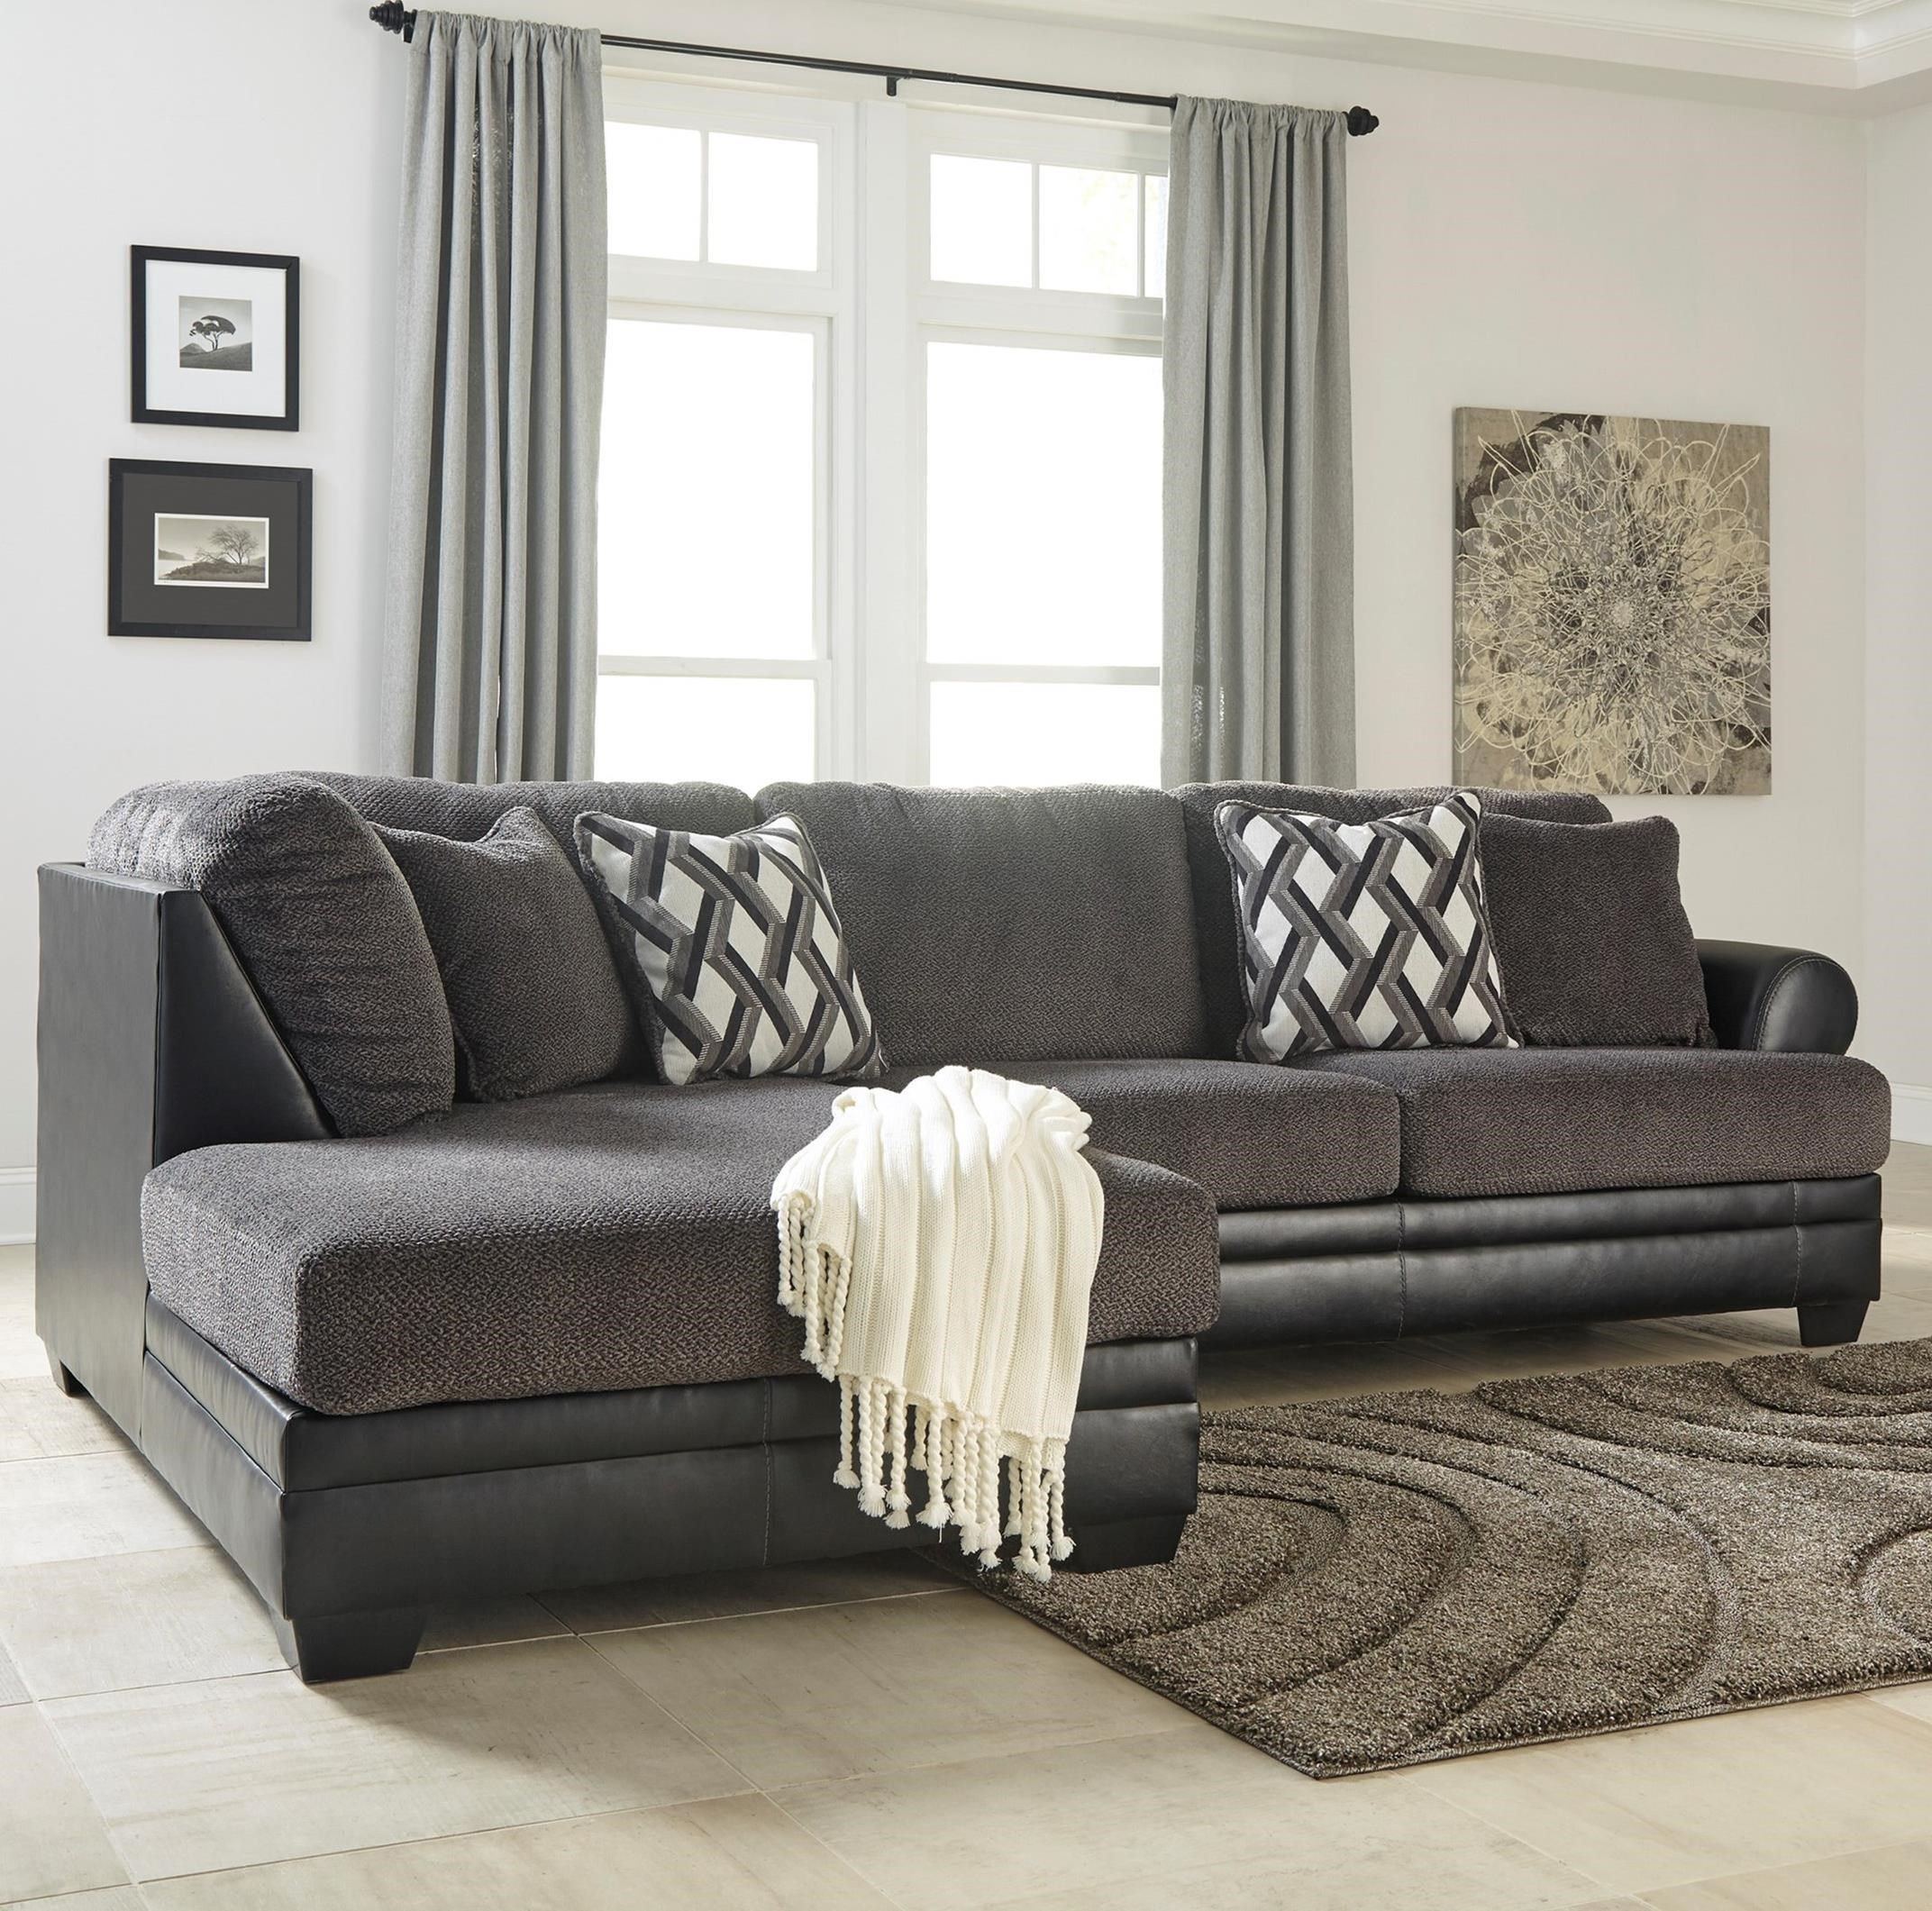 Kumasi 2 Piece Sectional with Left Chaise by Benchcraft